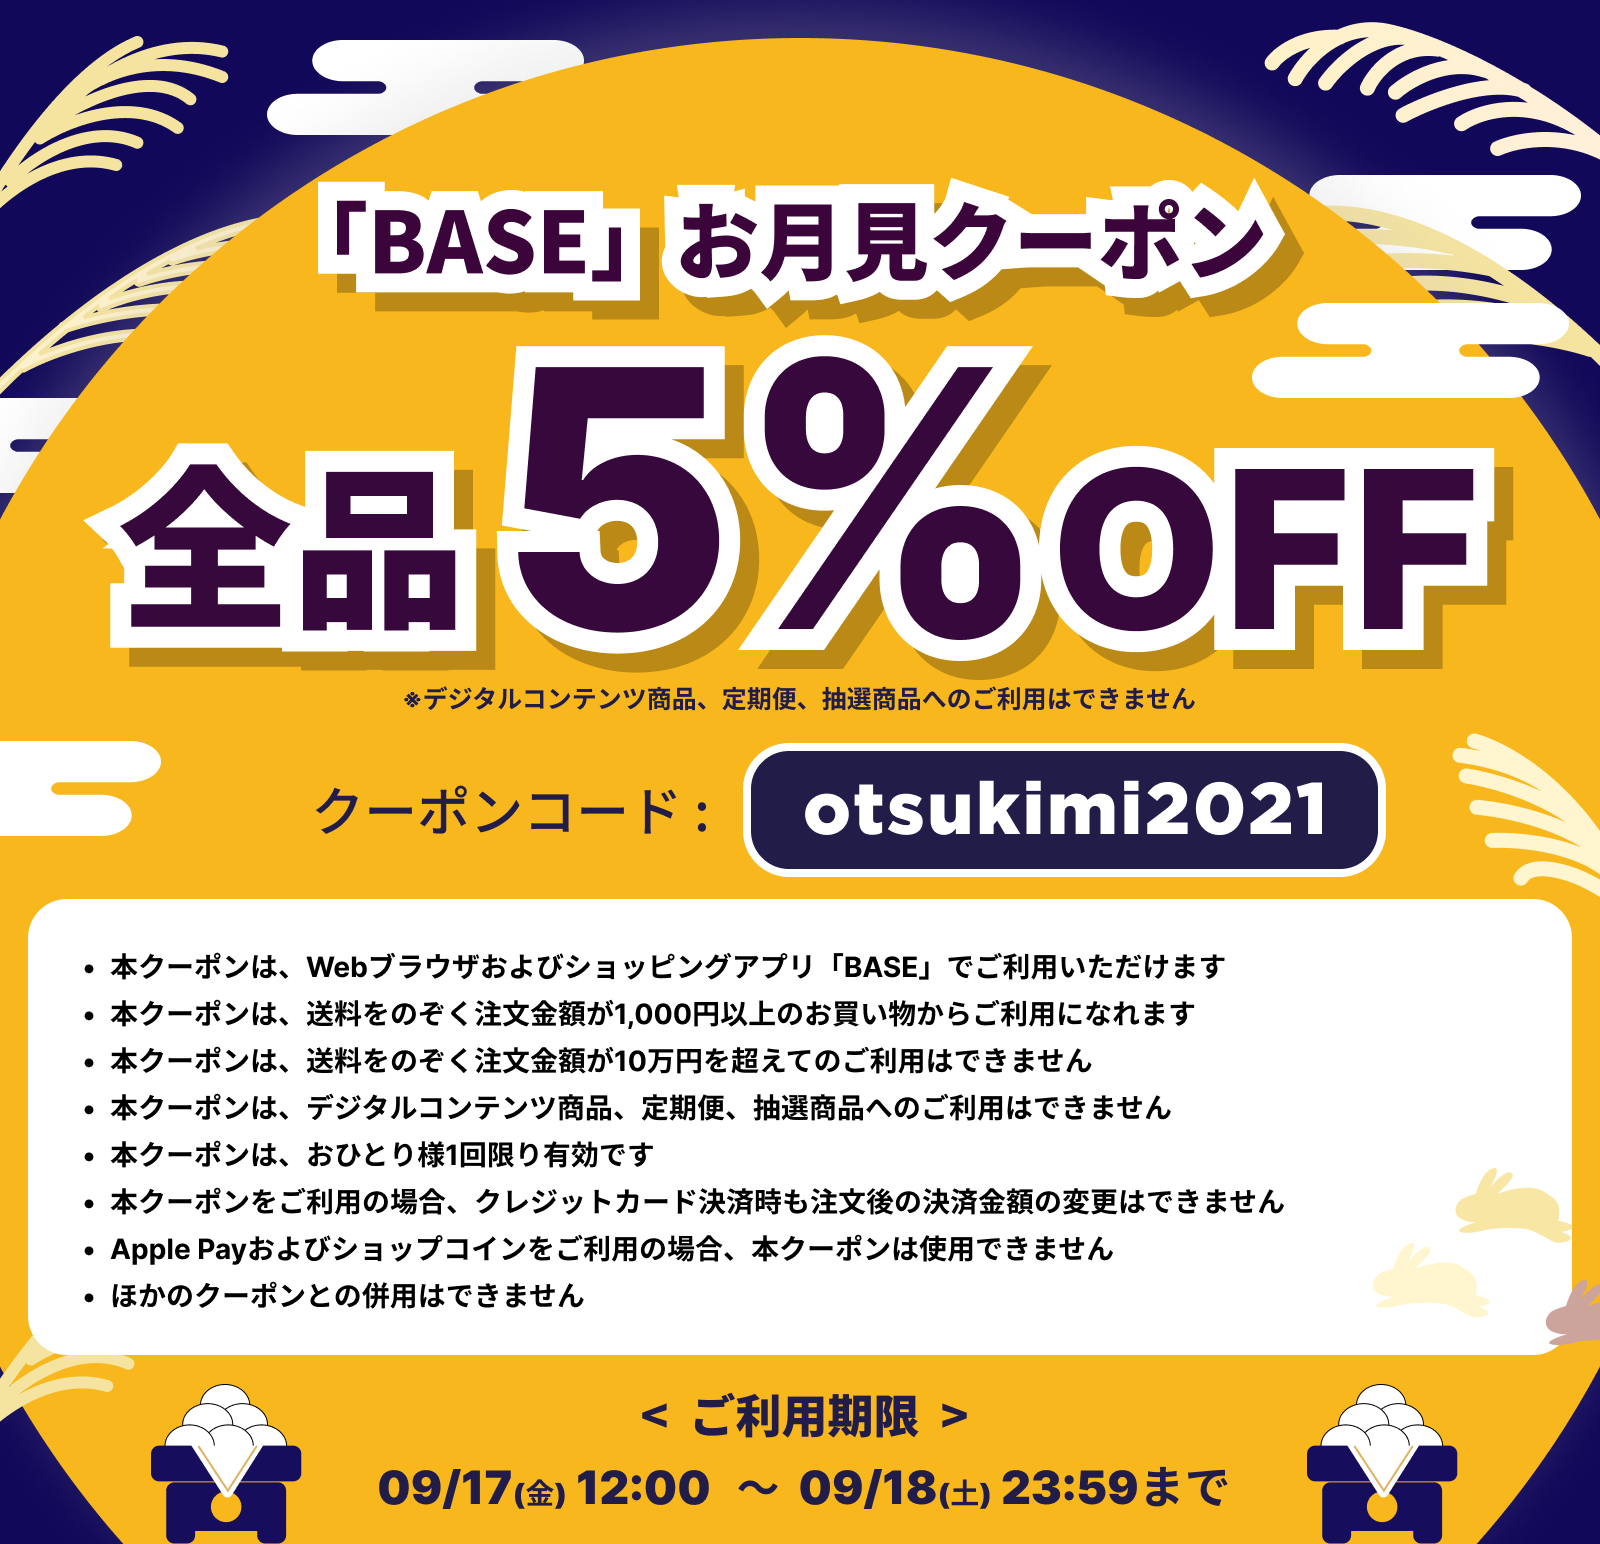 <informations ・ Septembre 2021 / 9月の営業予定>